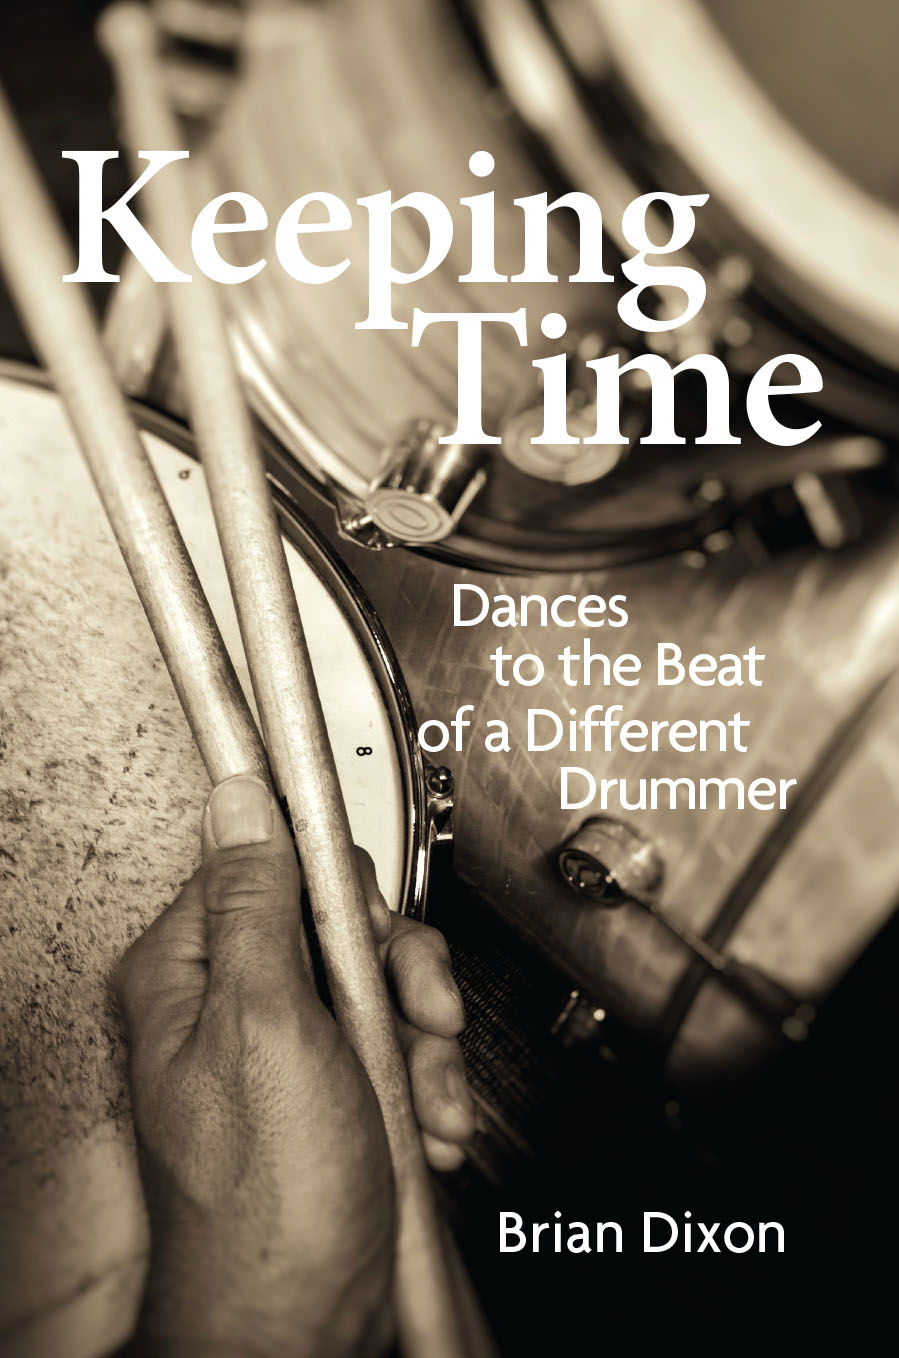 Keeping Time: Dances to the Beat of a Different Drummer by Brian Dixon